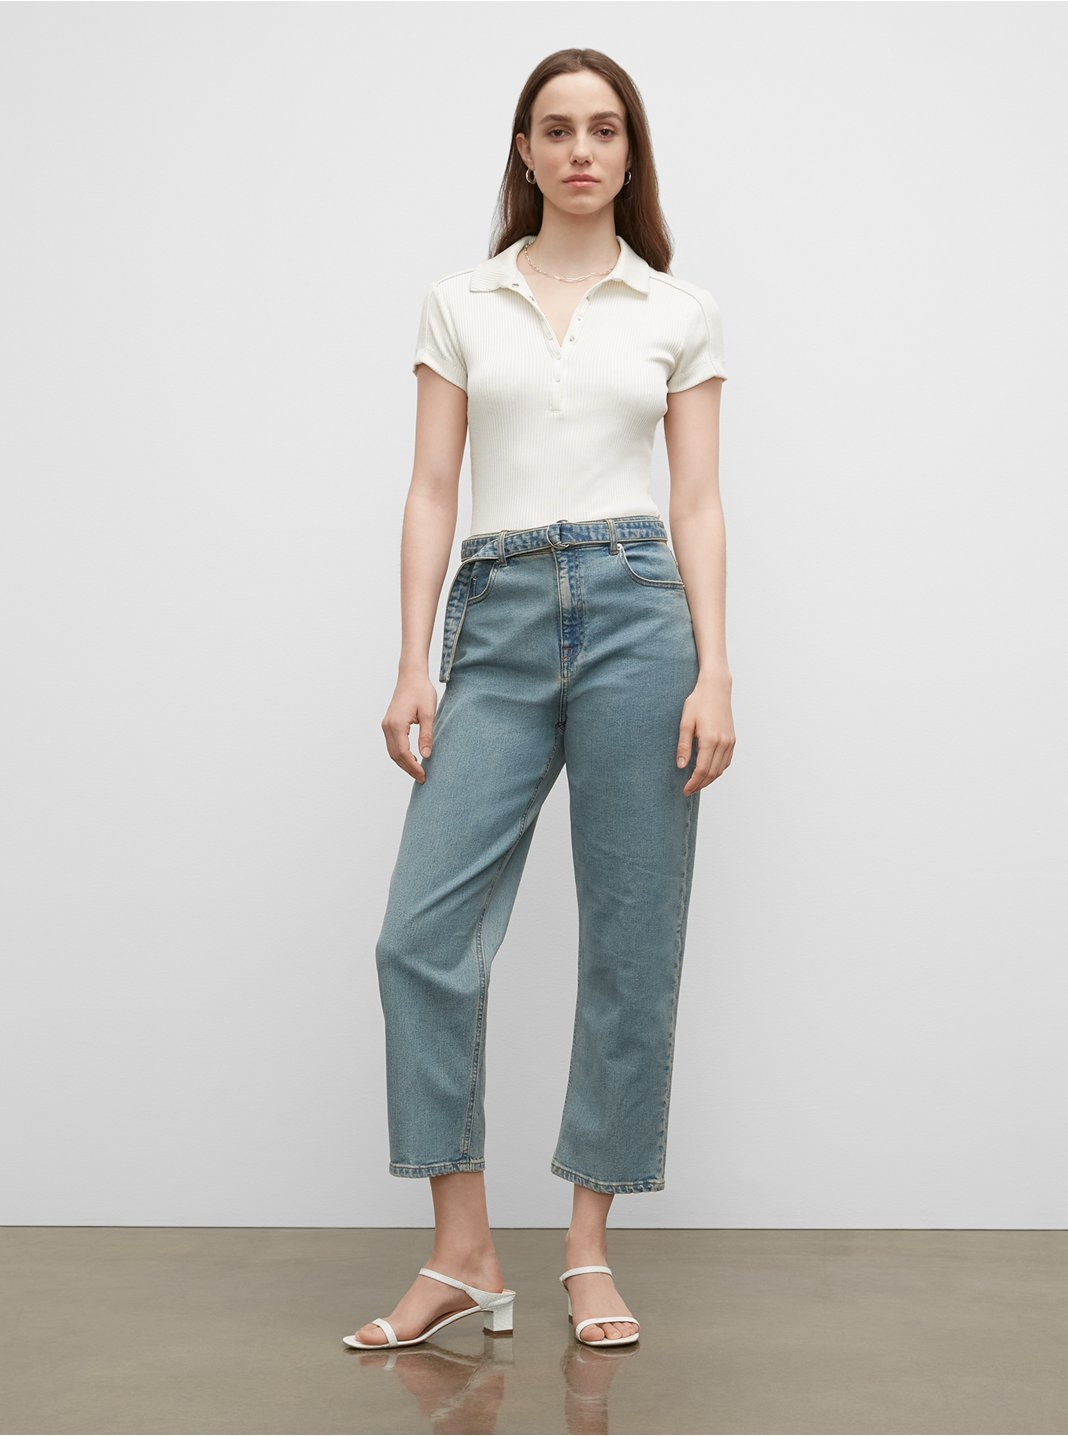 The Easy Crop Jeans